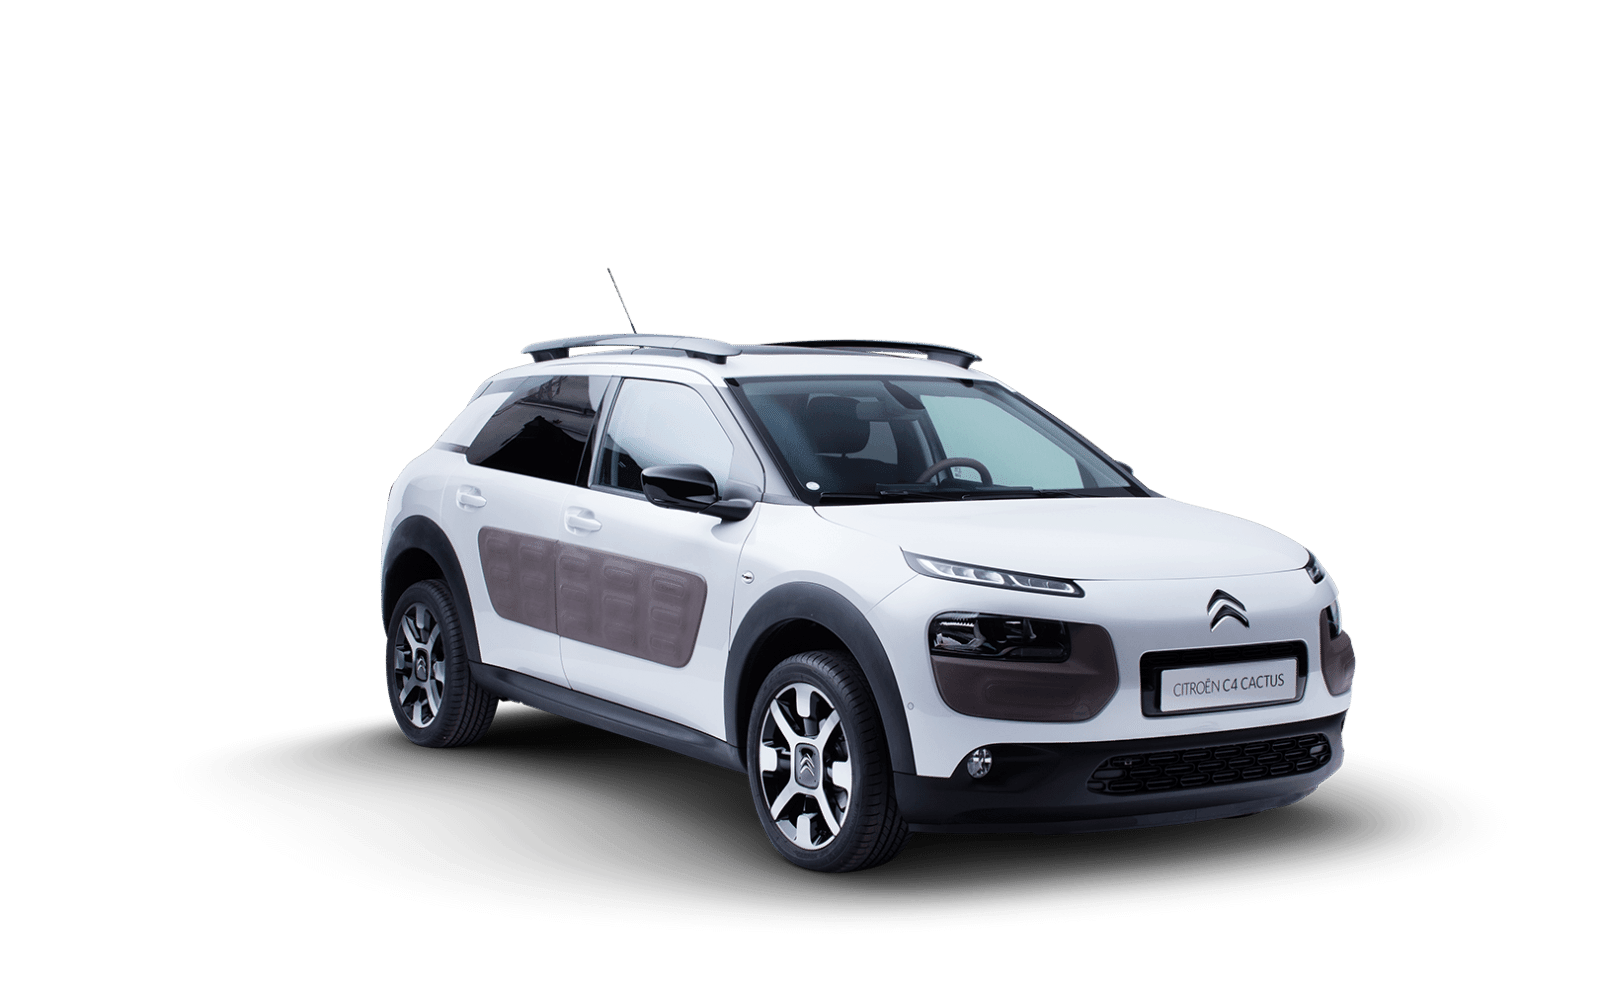 citroen cactus specs and dimensions 2017 2018 best cars reviews. Black Bedroom Furniture Sets. Home Design Ideas